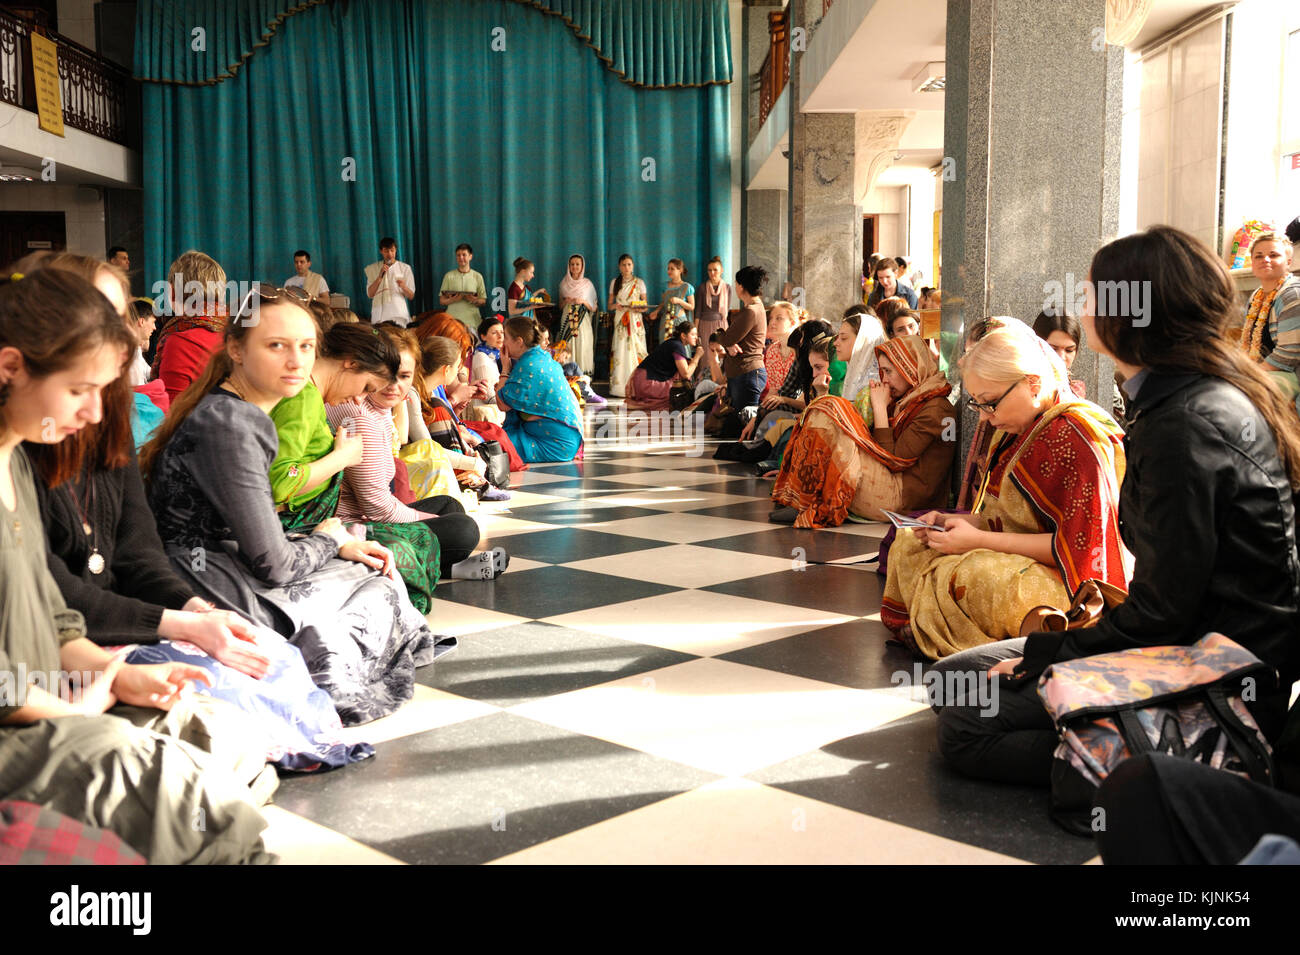 Krishna parishioners sitting on a floor in a temple and waiting for attendants giving them Prasad - food that is Stock Photo